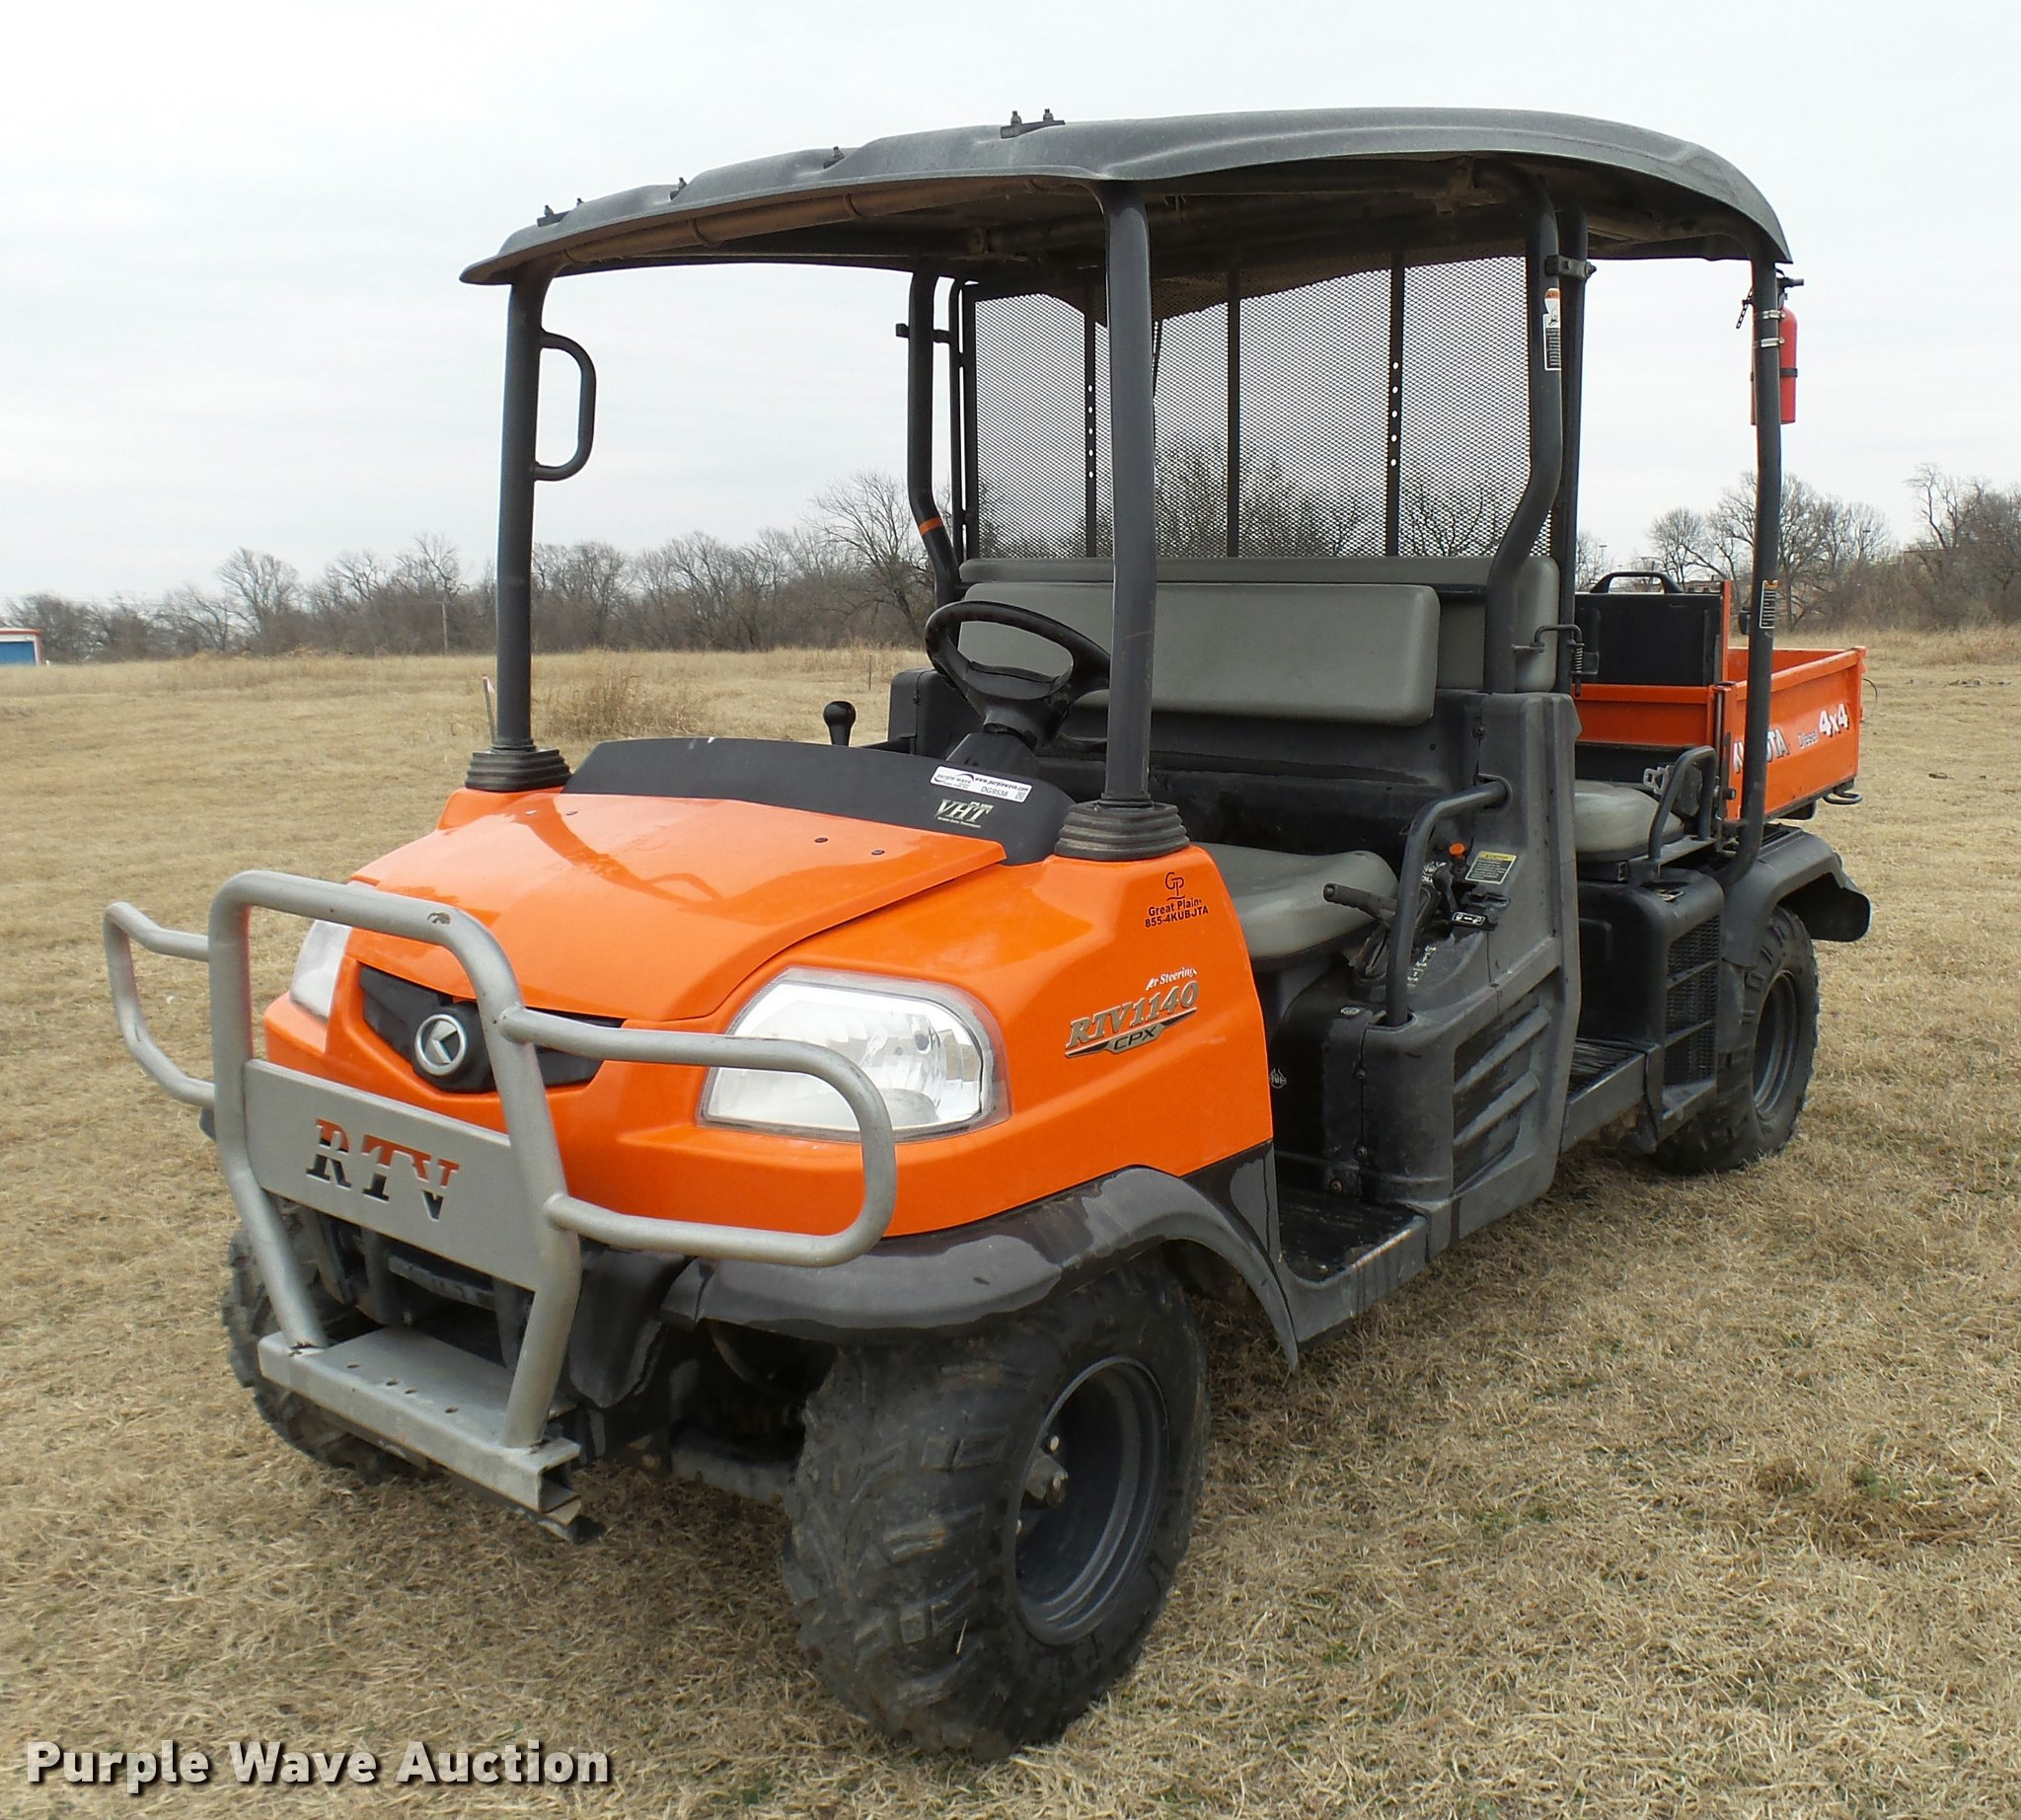 [SCHEMATICS_4NL]  2015 Kubota RTV1140CPX utility vehicle in Ada, OK | Item DG9538 sold |  Purple Wave | Kubota Rtv 1140 Cpx Wiring Diagram |  | Purple Wave